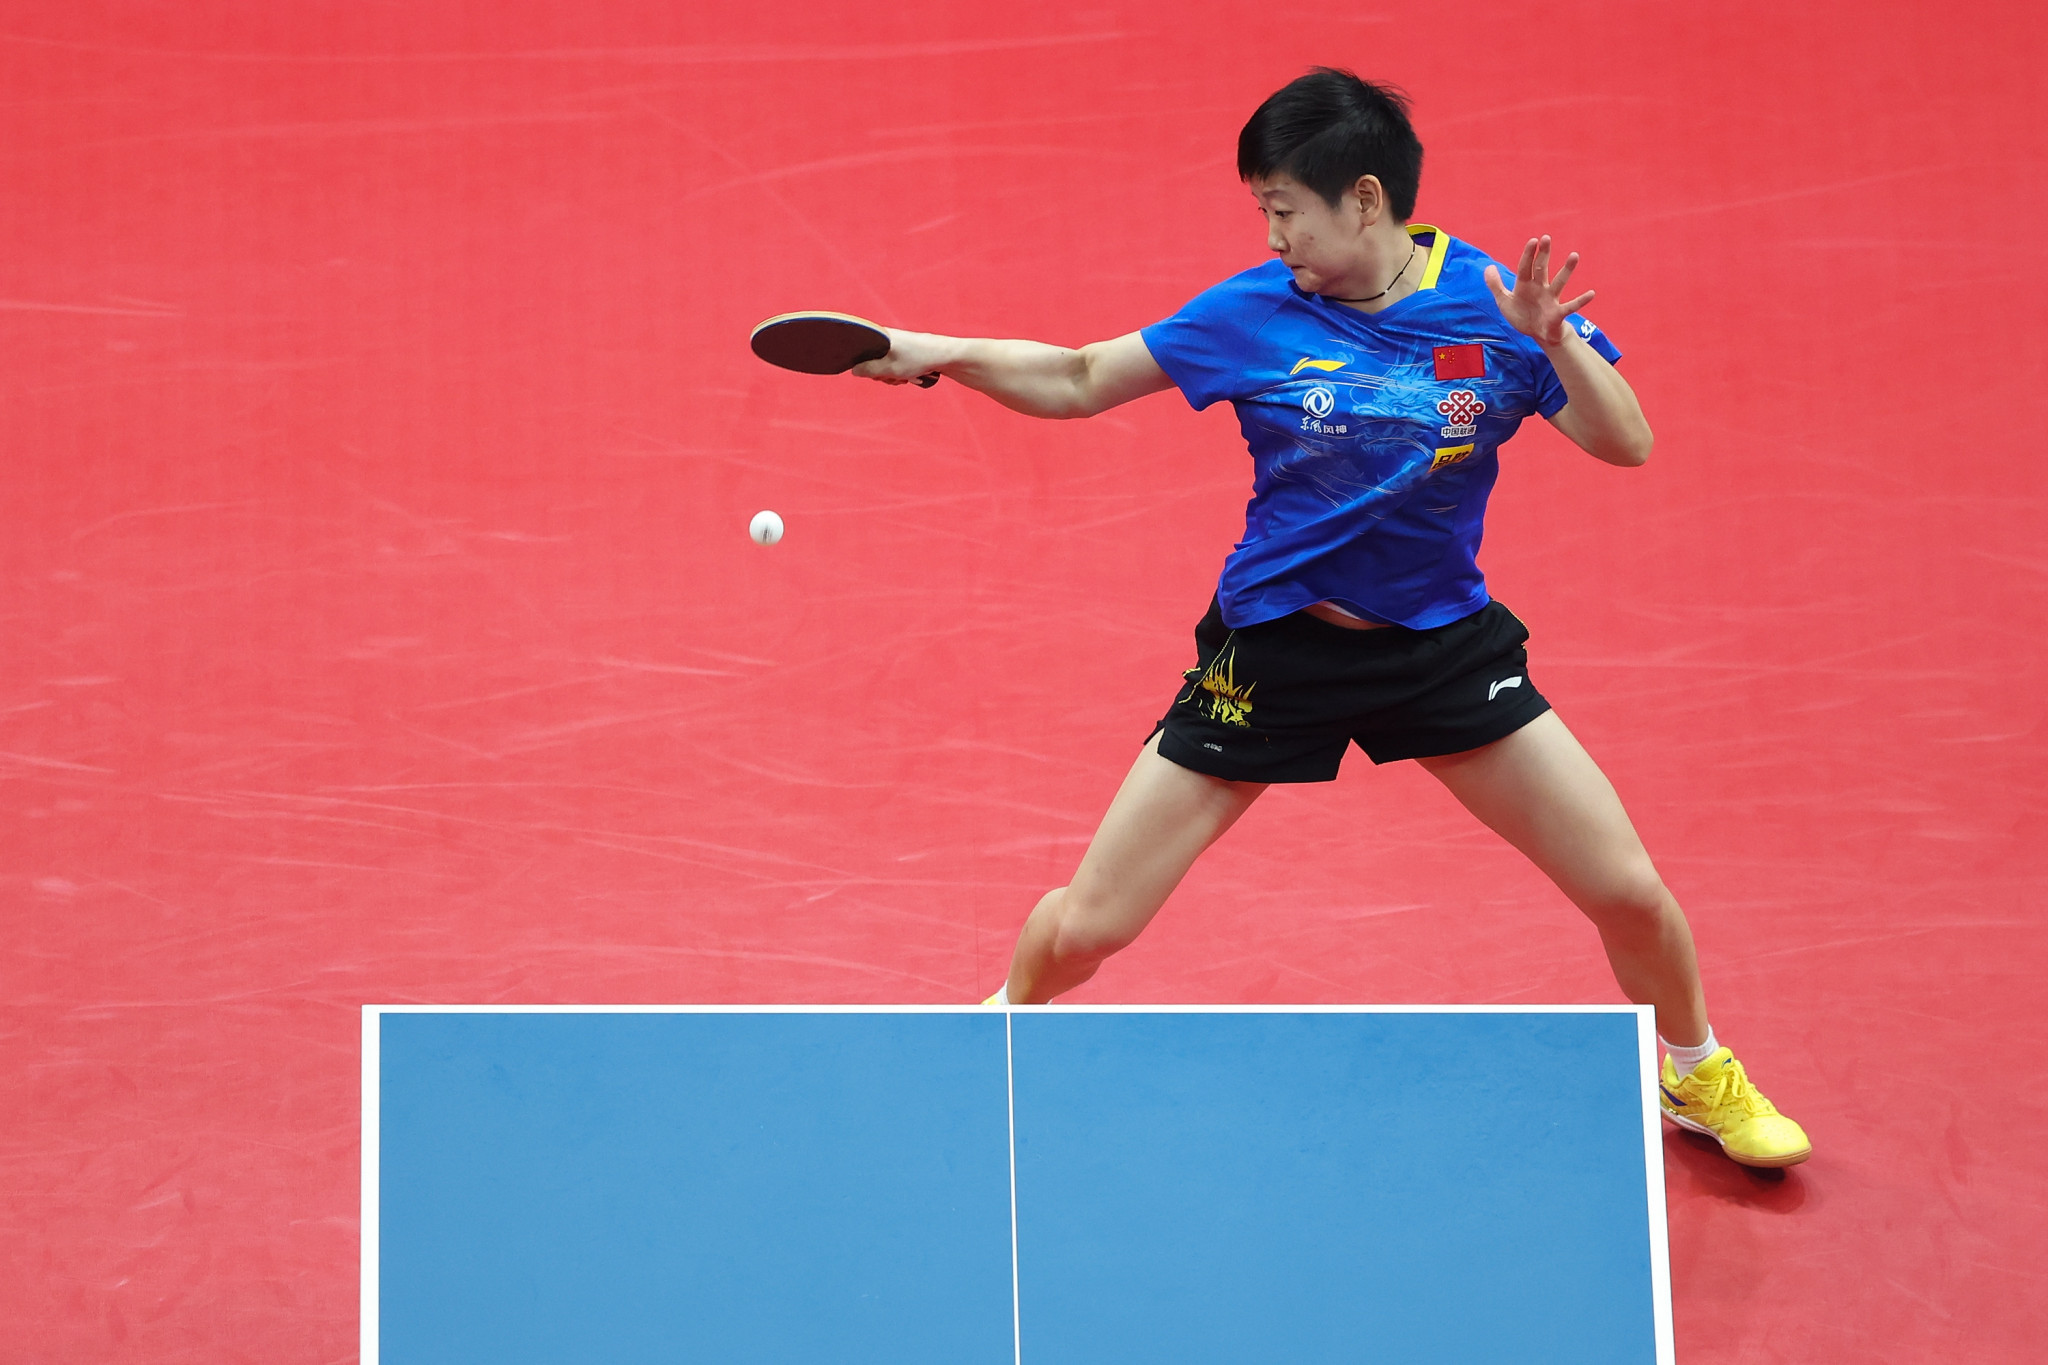 Tokyo 2020 table tennis qualifier to offer nine Olympic spots